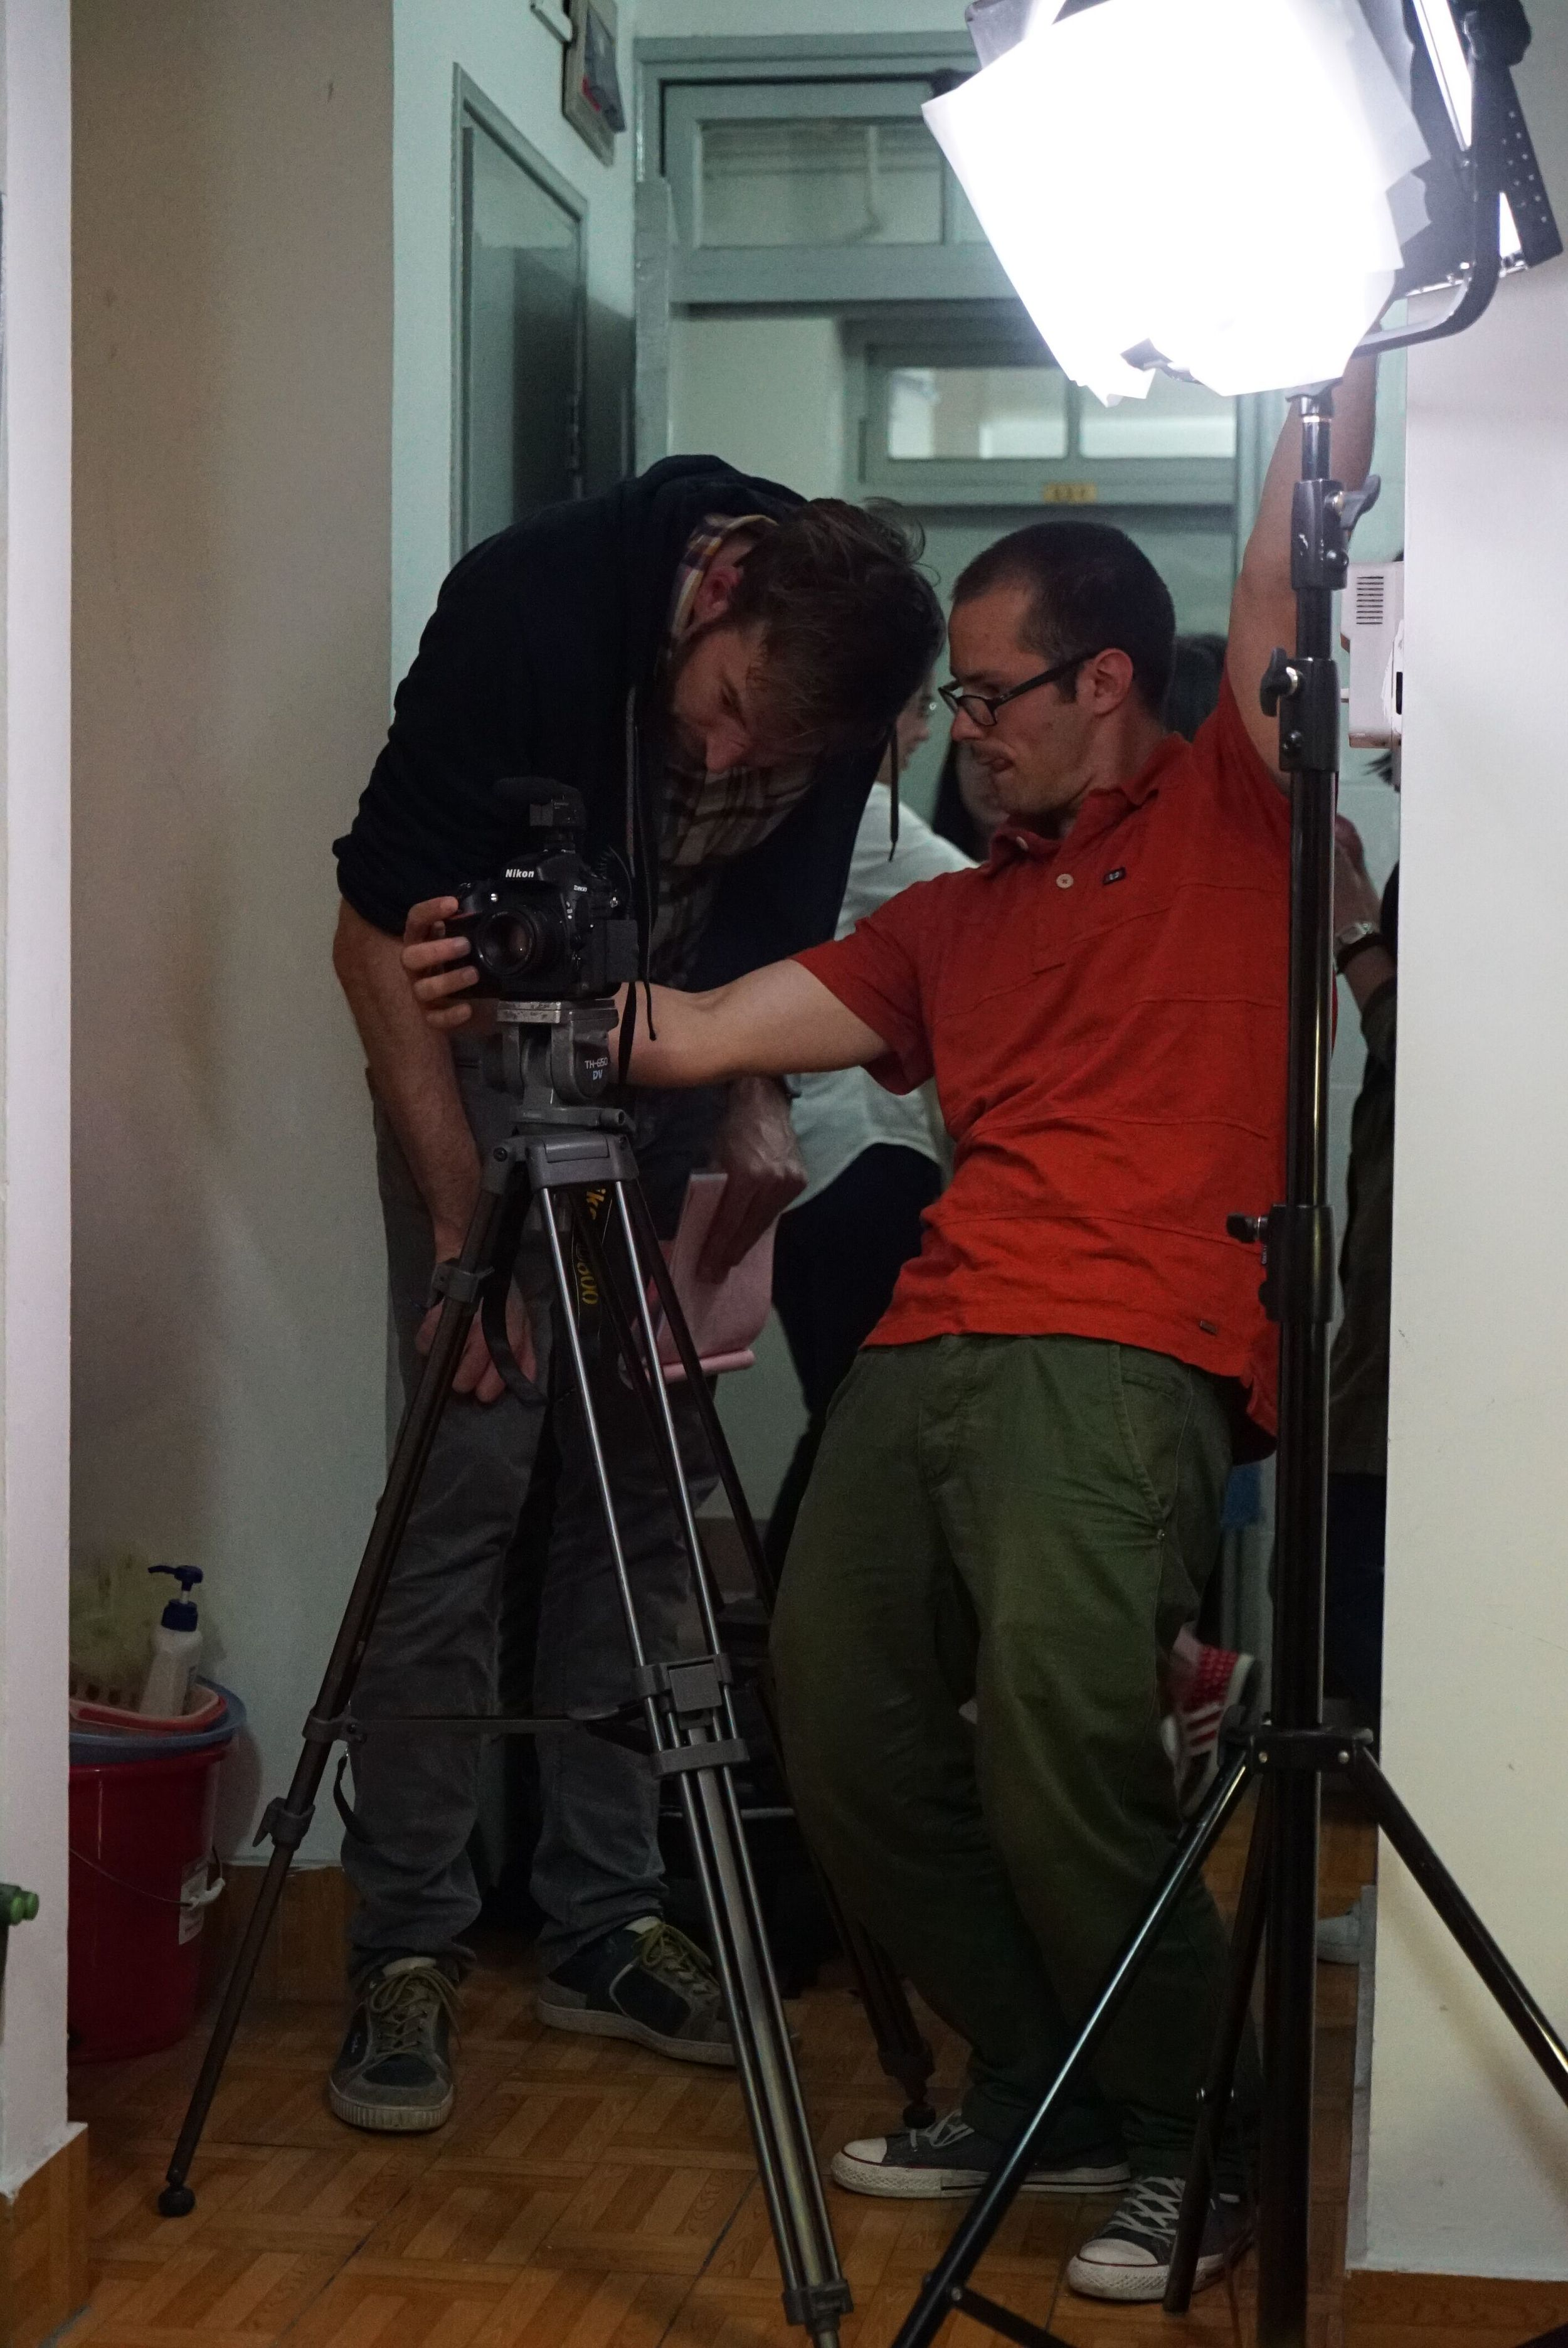 Working very concentrated on the next shot with director Simon Weber in the University's dorm.